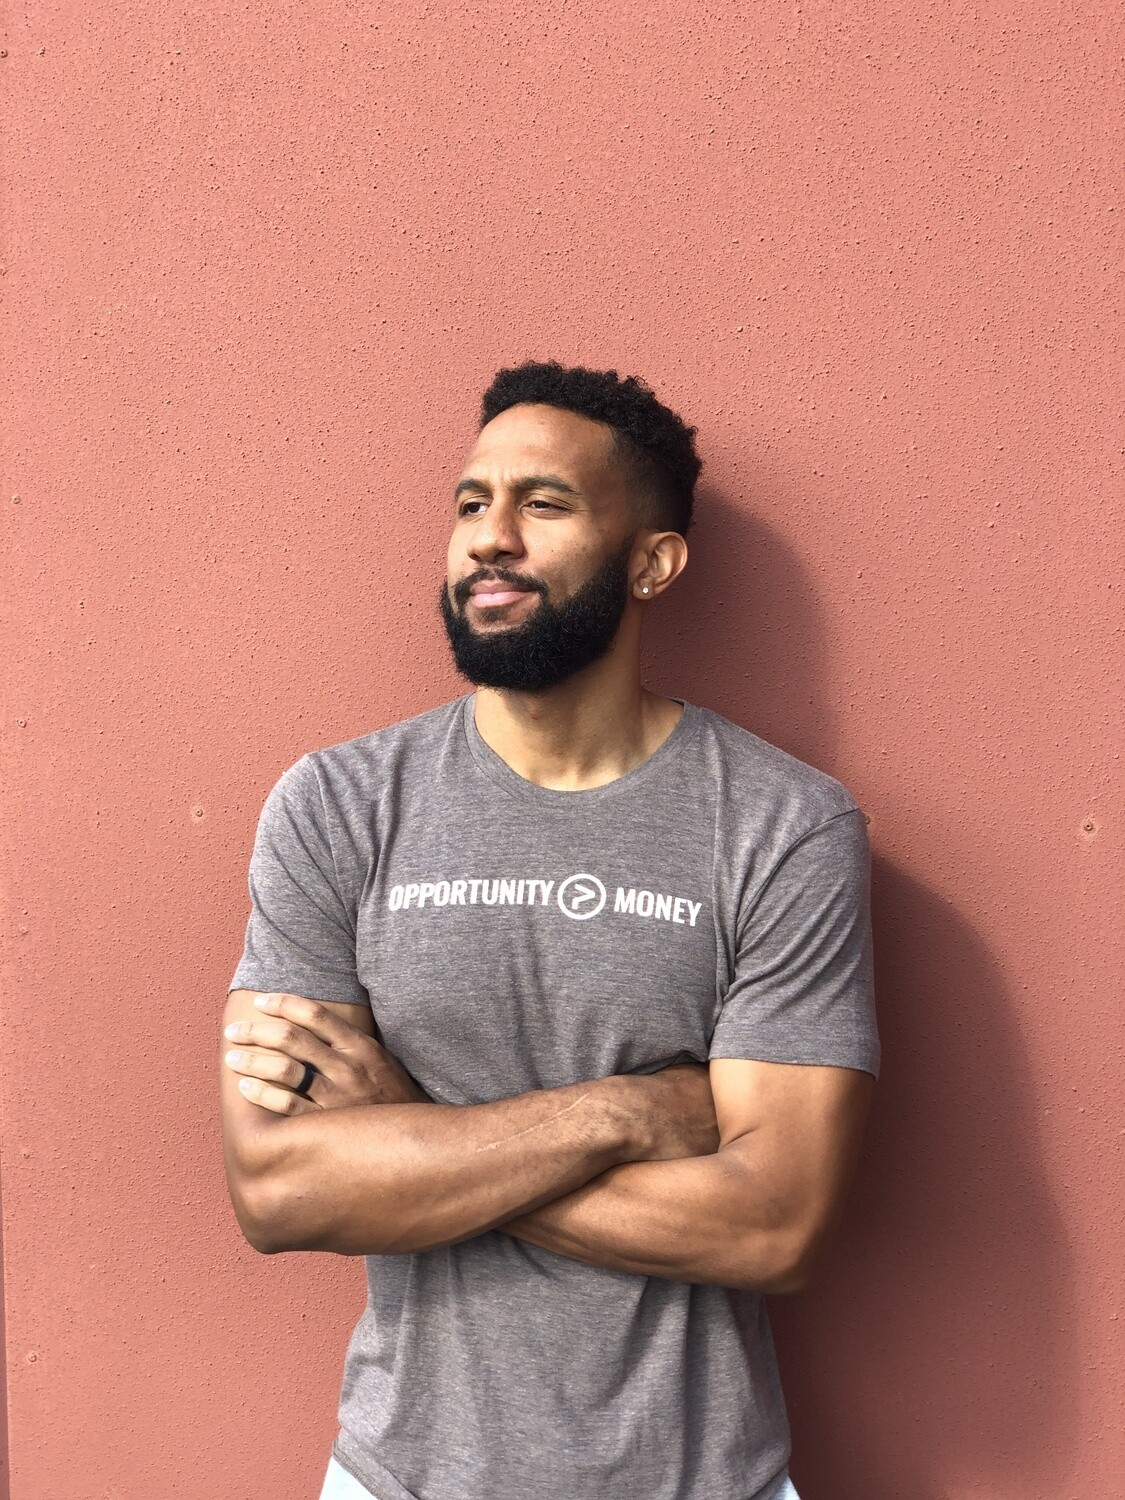 Opportunity > Money Tri-Blend Tee - (Unisex)